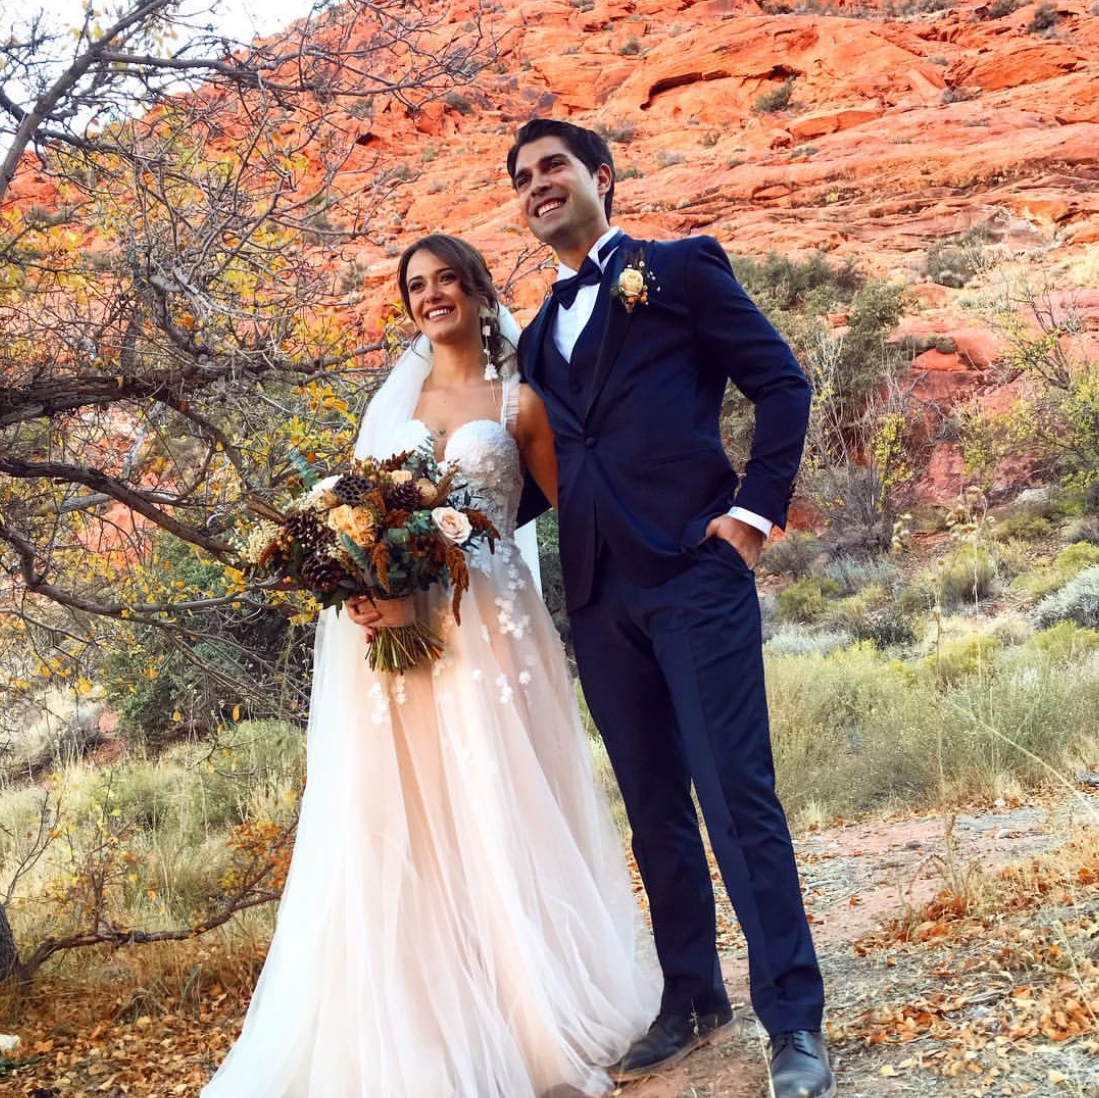 Las Vegas Wedding Officiant - Turkish Couple